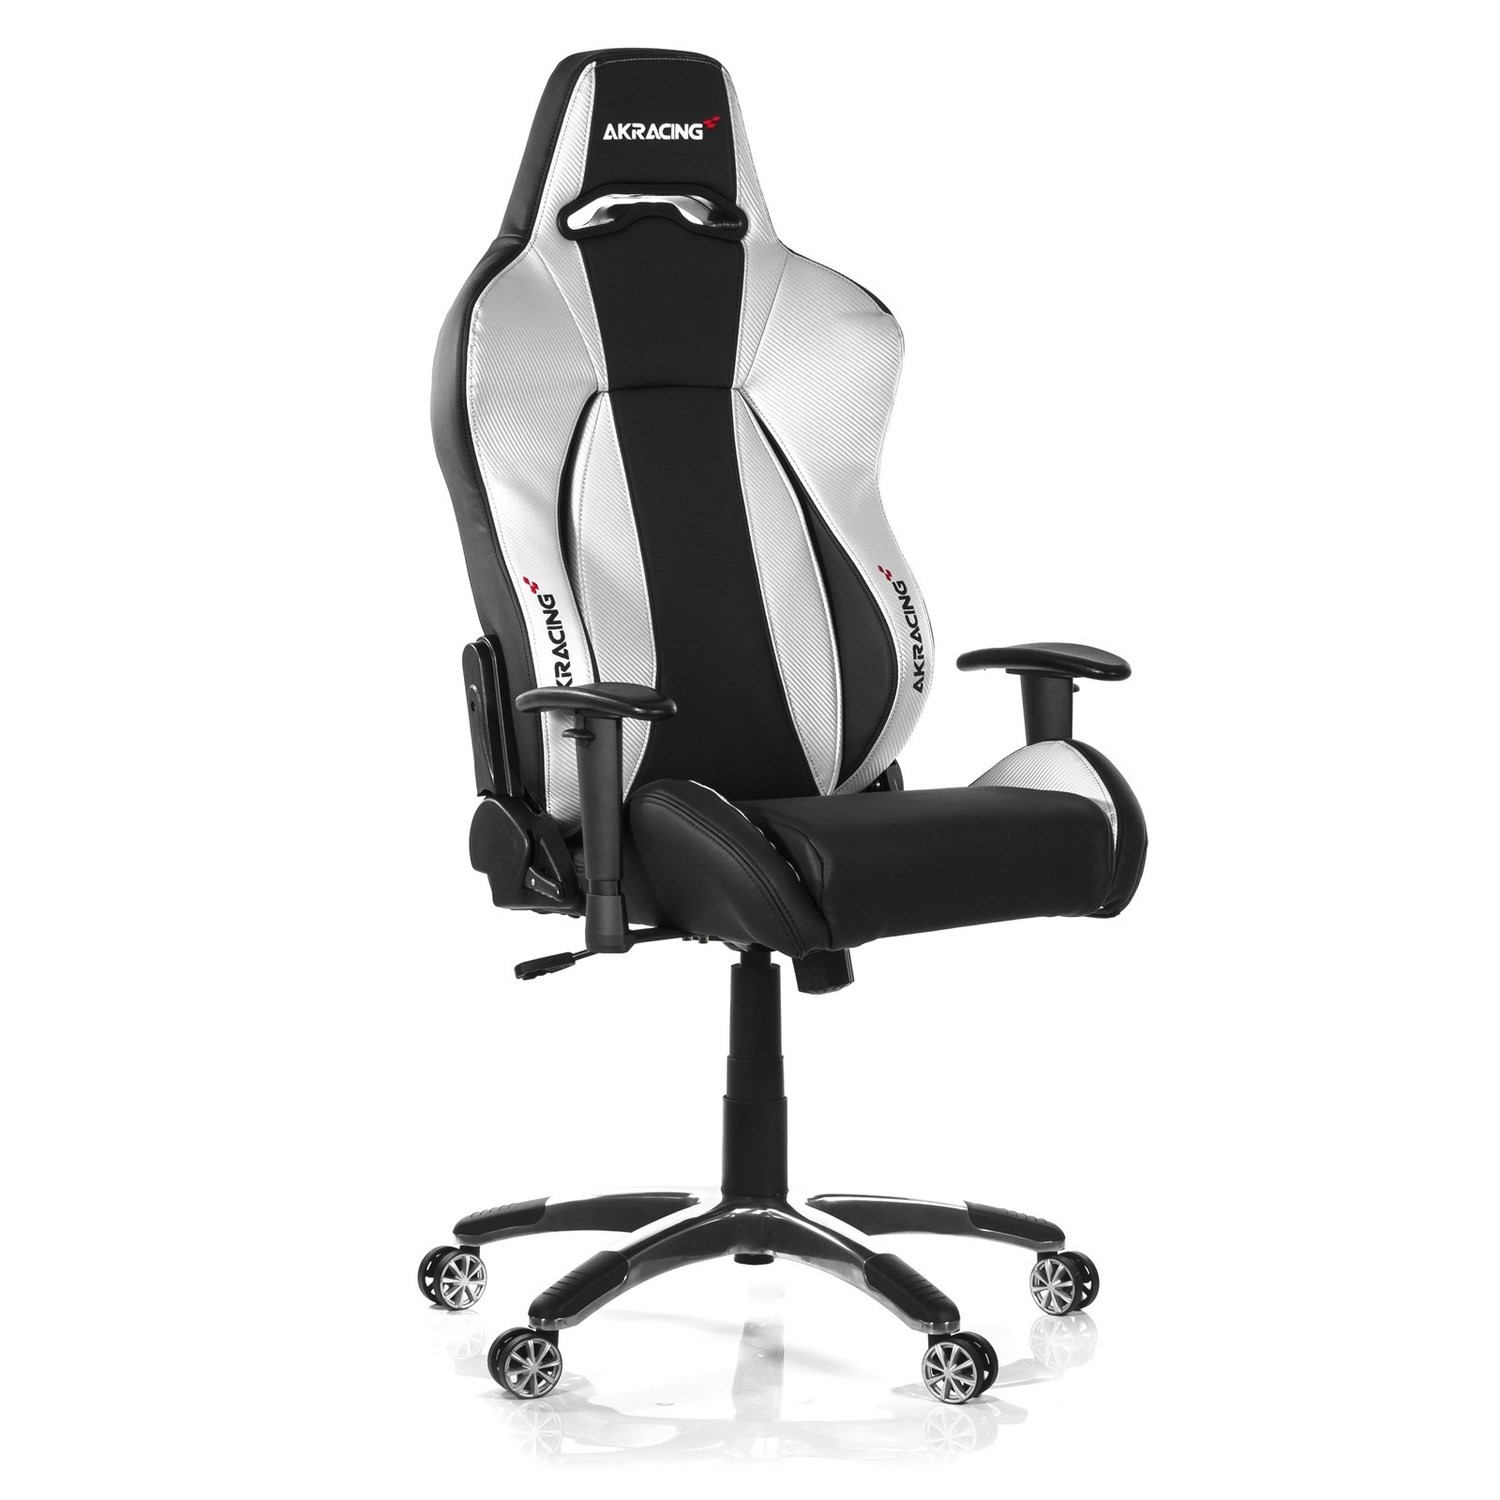 Prime Ak Racing K7002 Premium Gaming Chair Black Silver Machost Co Dining Chair Design Ideas Machostcouk